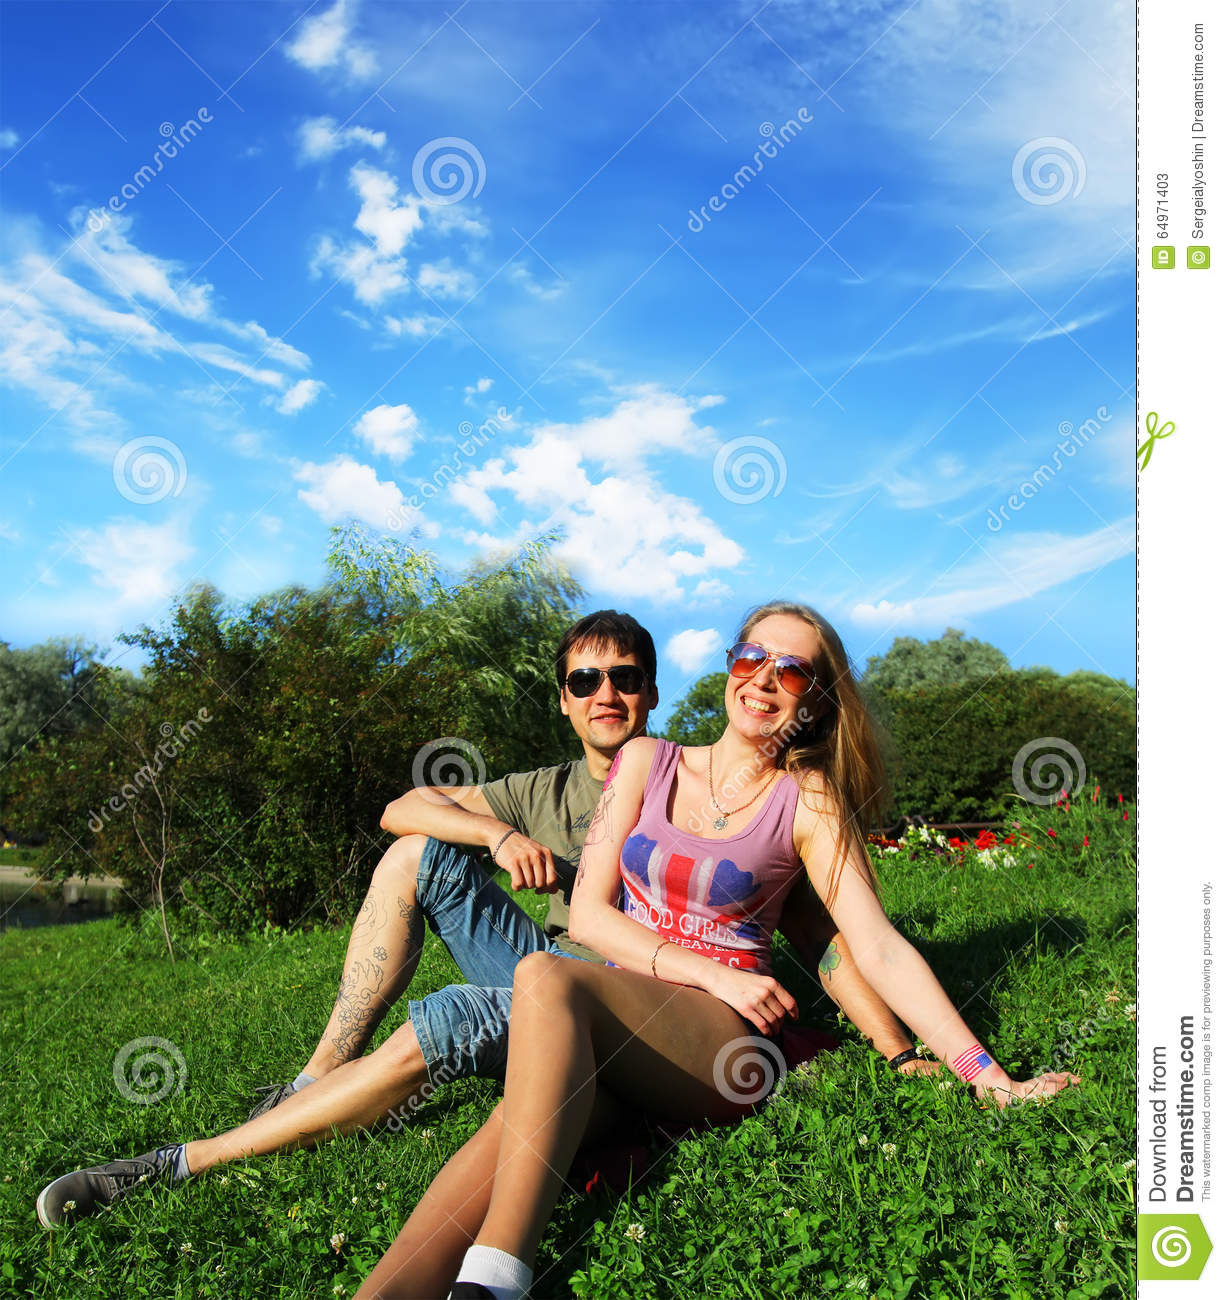 Young Smiling Couple In Sunglasses Sitting In A Park In